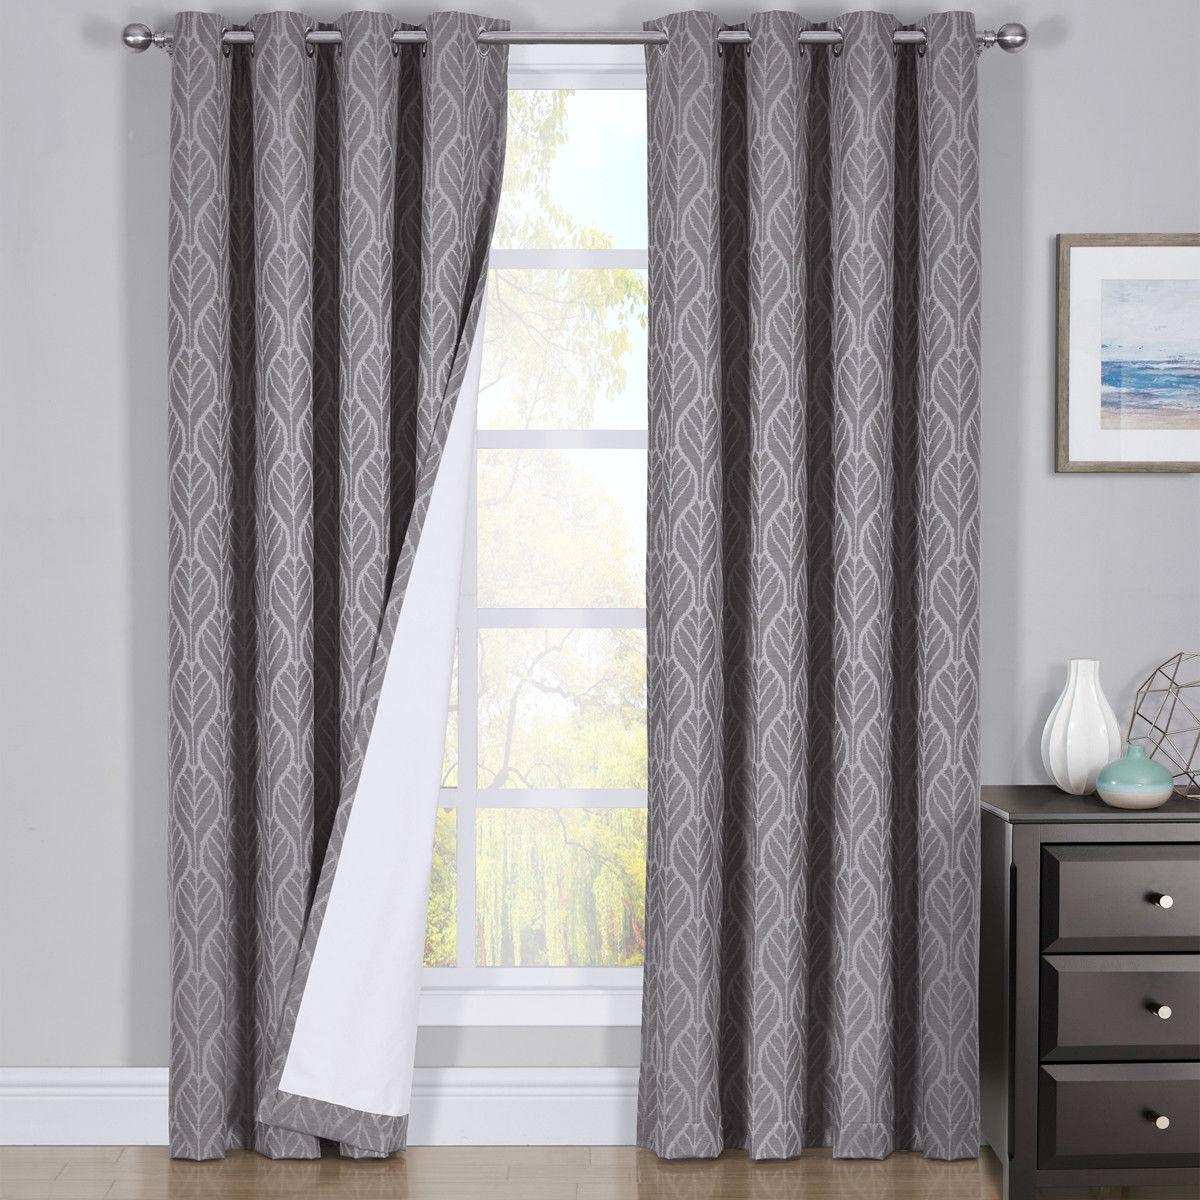 Hilton Blackout Curtains Panels Jacquard Thermal Insulated Pairs Pertaining To Thermal Insulated Blackout Curtain Pairs (View 5 of 30)